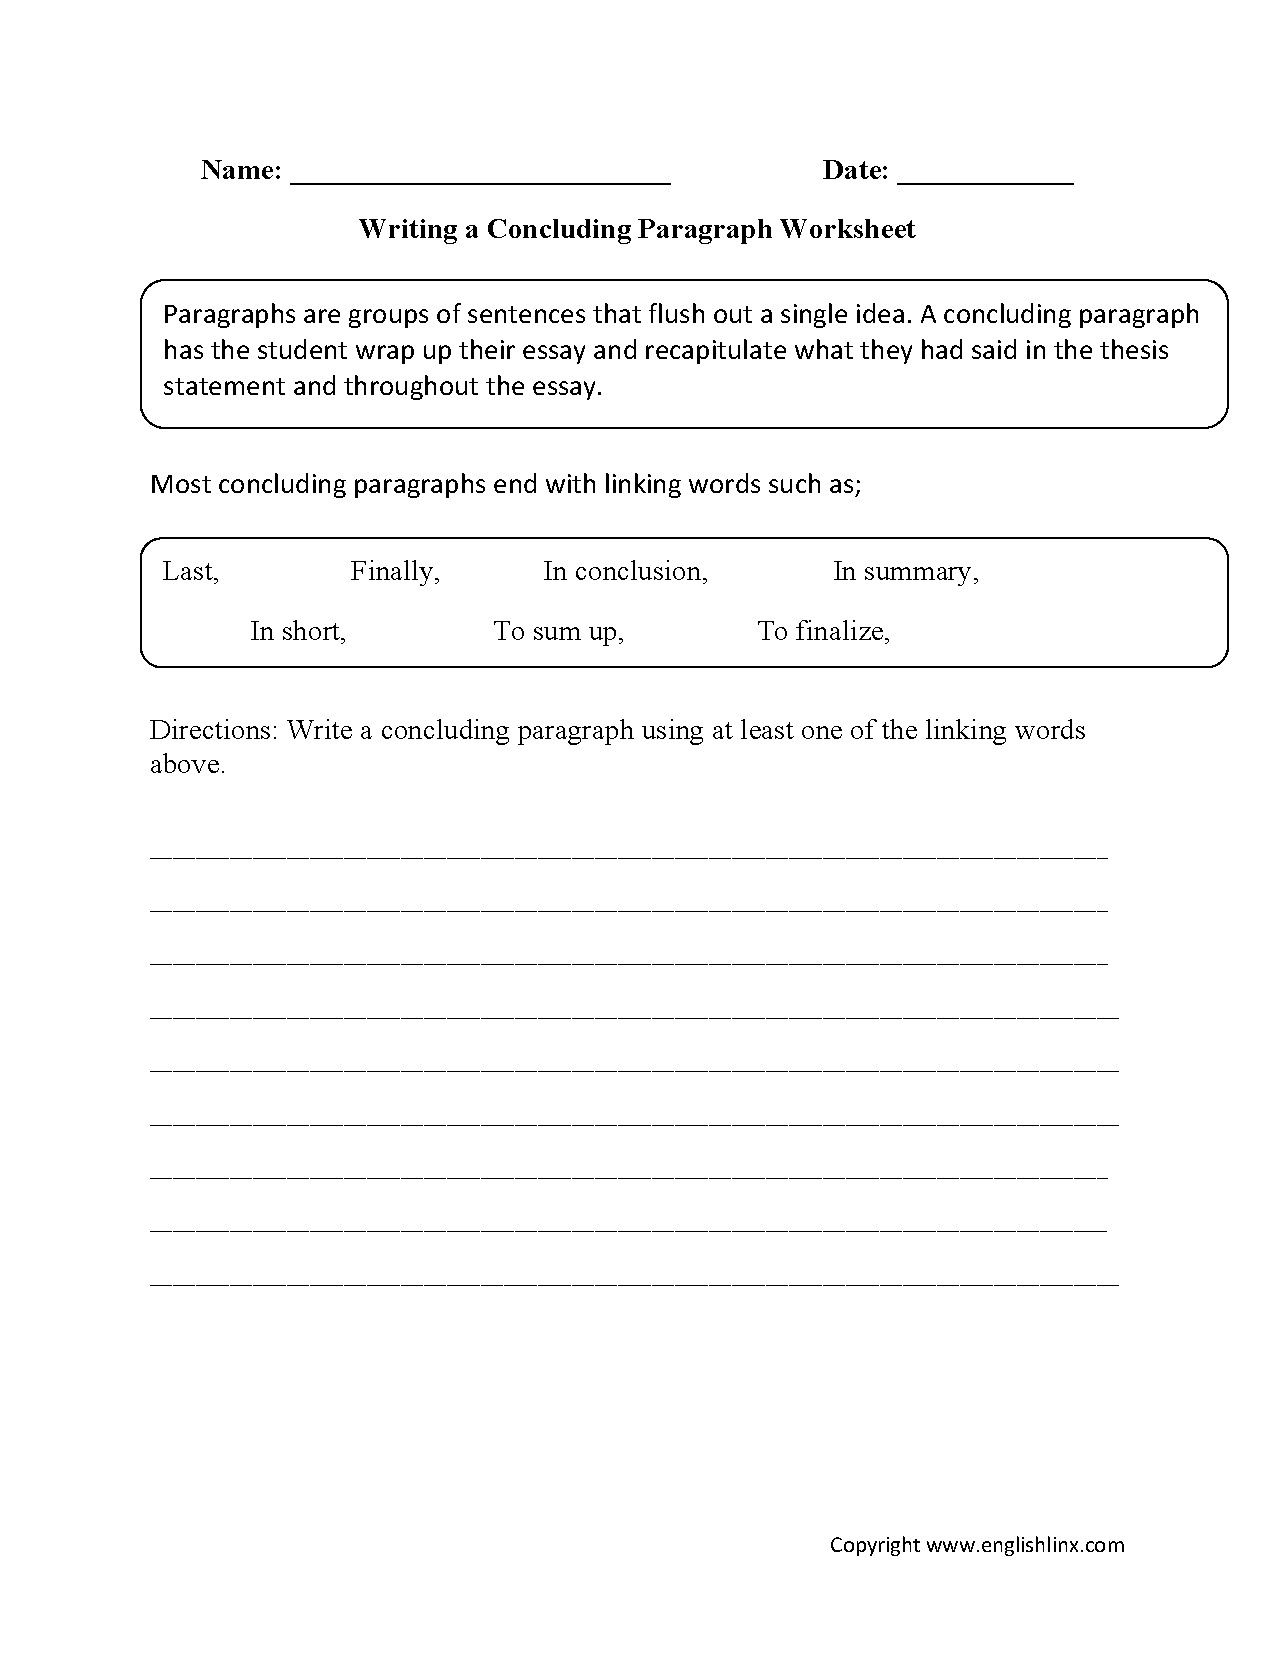 https://cute766.info/analyzing-author-s-point-of-view-worksheets-englishlinx/ [ 91 x 1662 Pixel ]